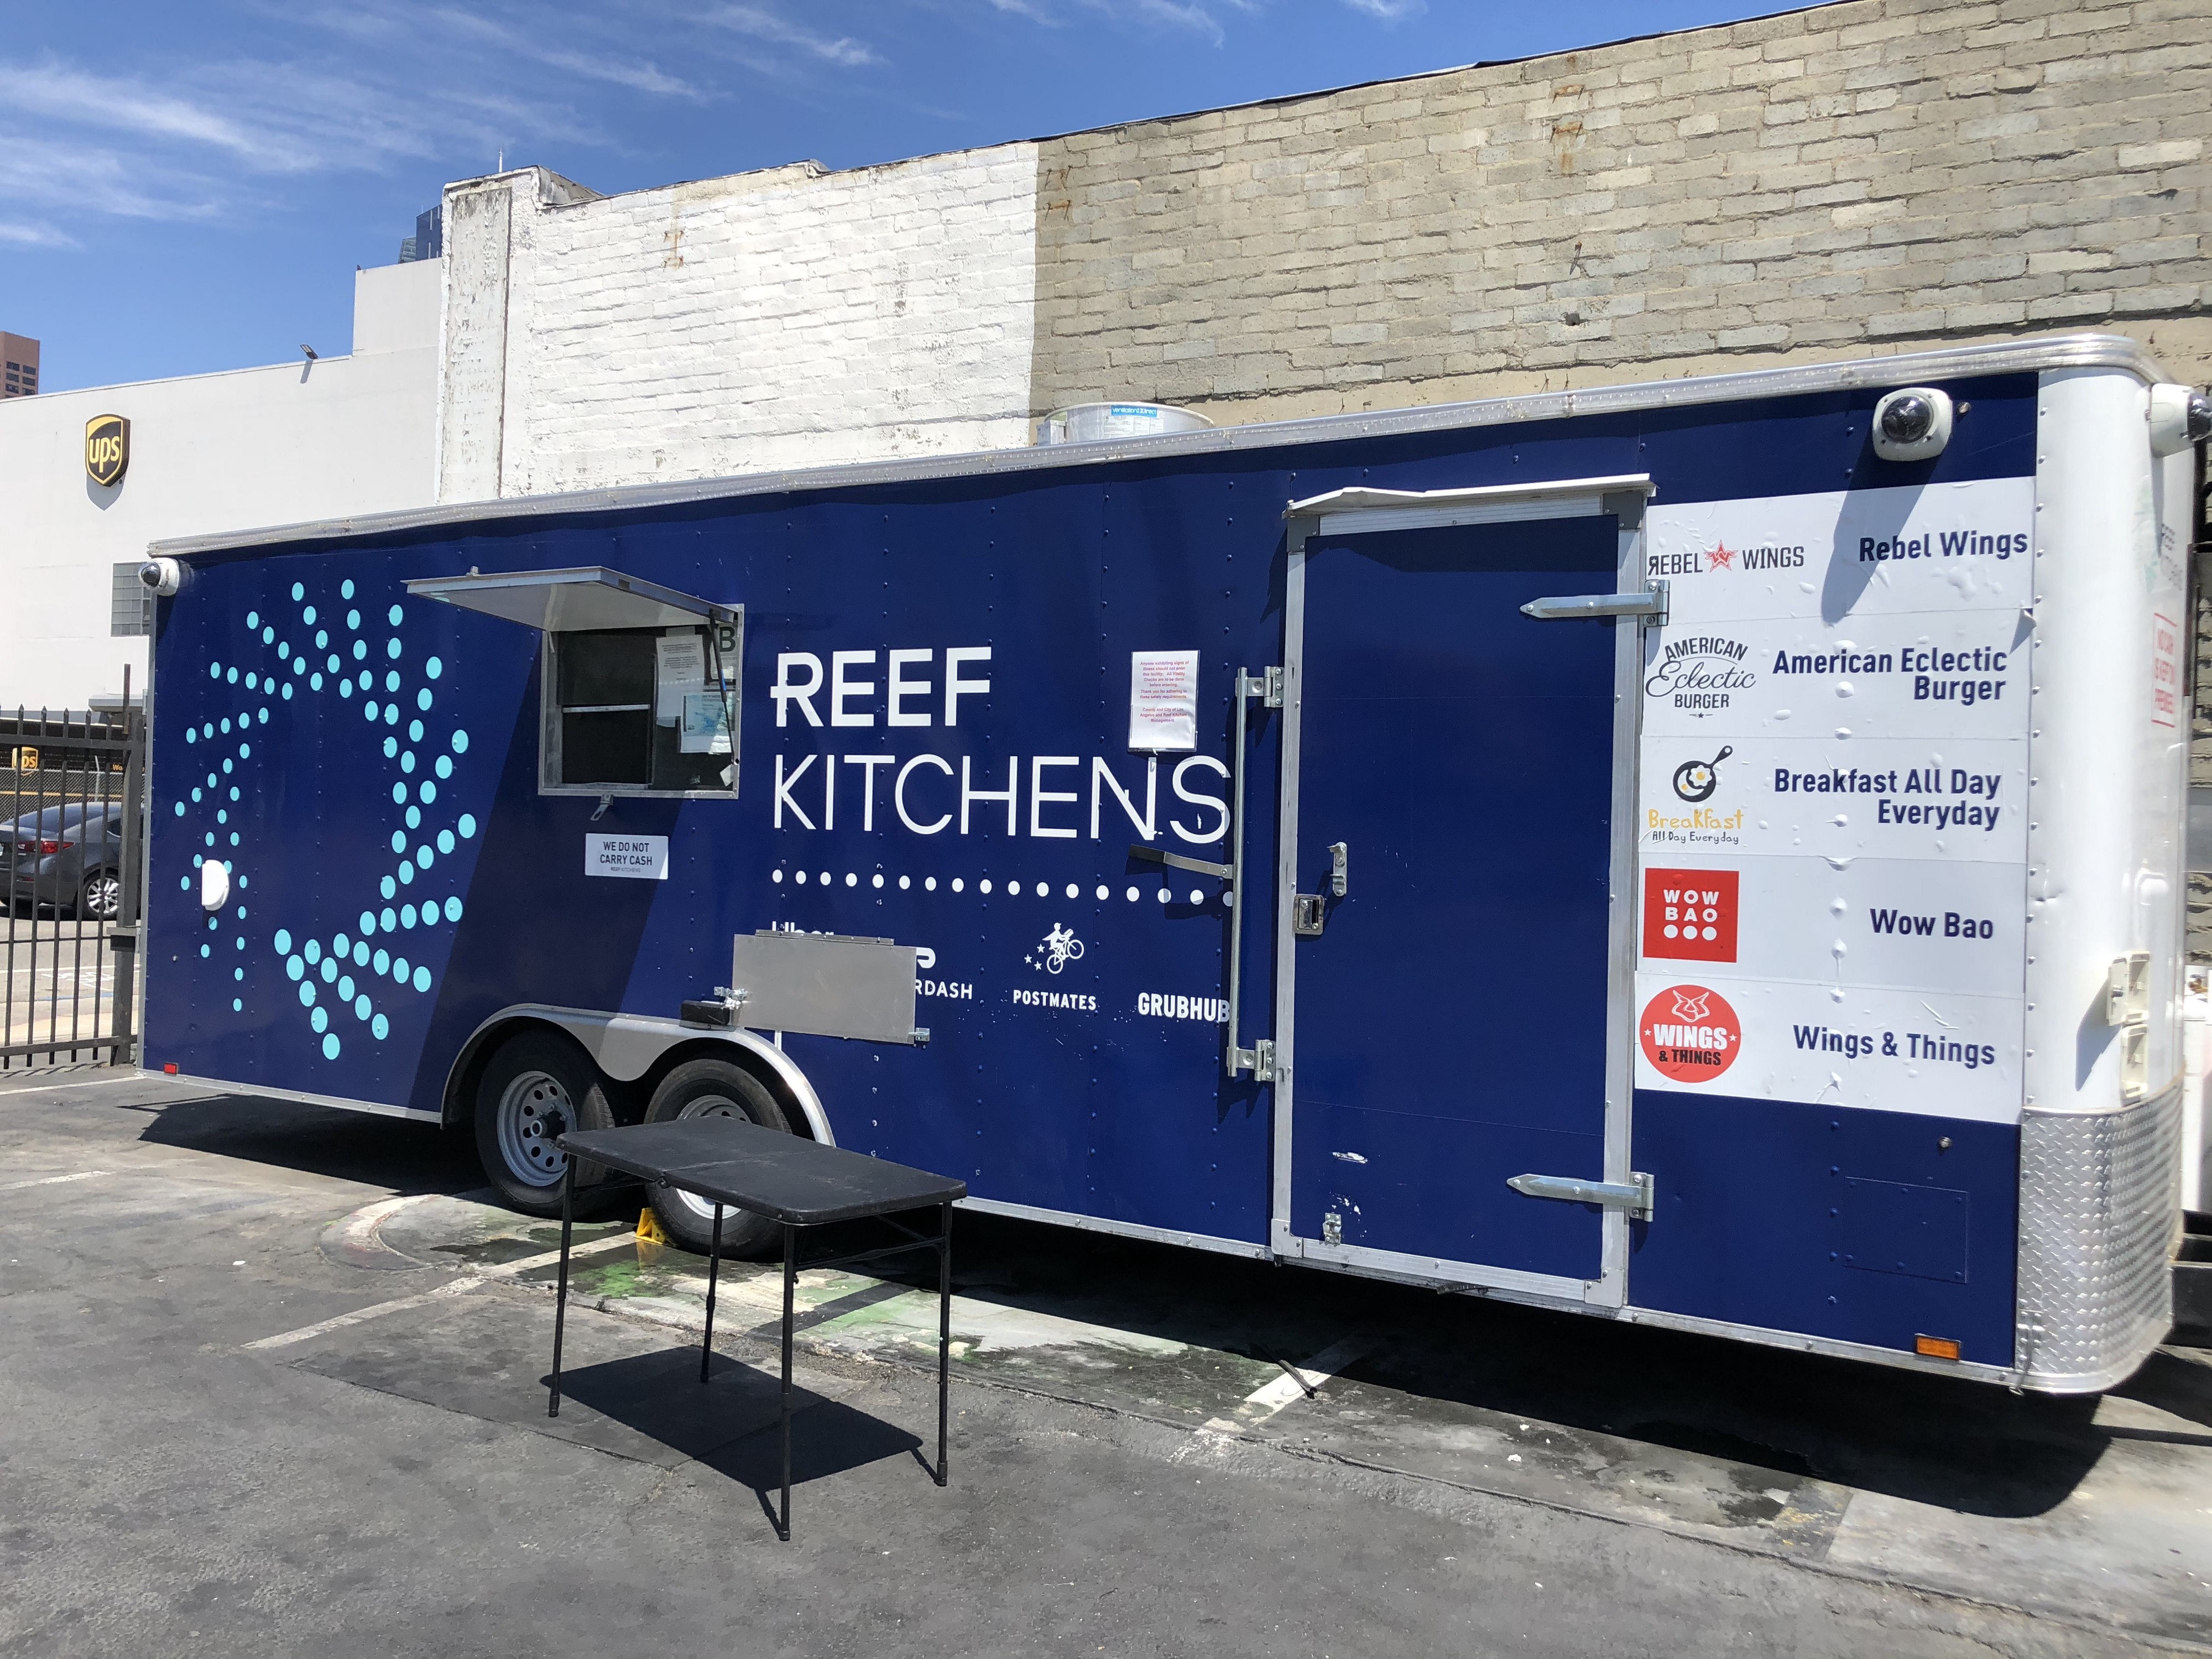 Food Truck Platform Brings Diverse Cuisines Directly To Outer Suburbs By Matt Newberg Hngry Medium